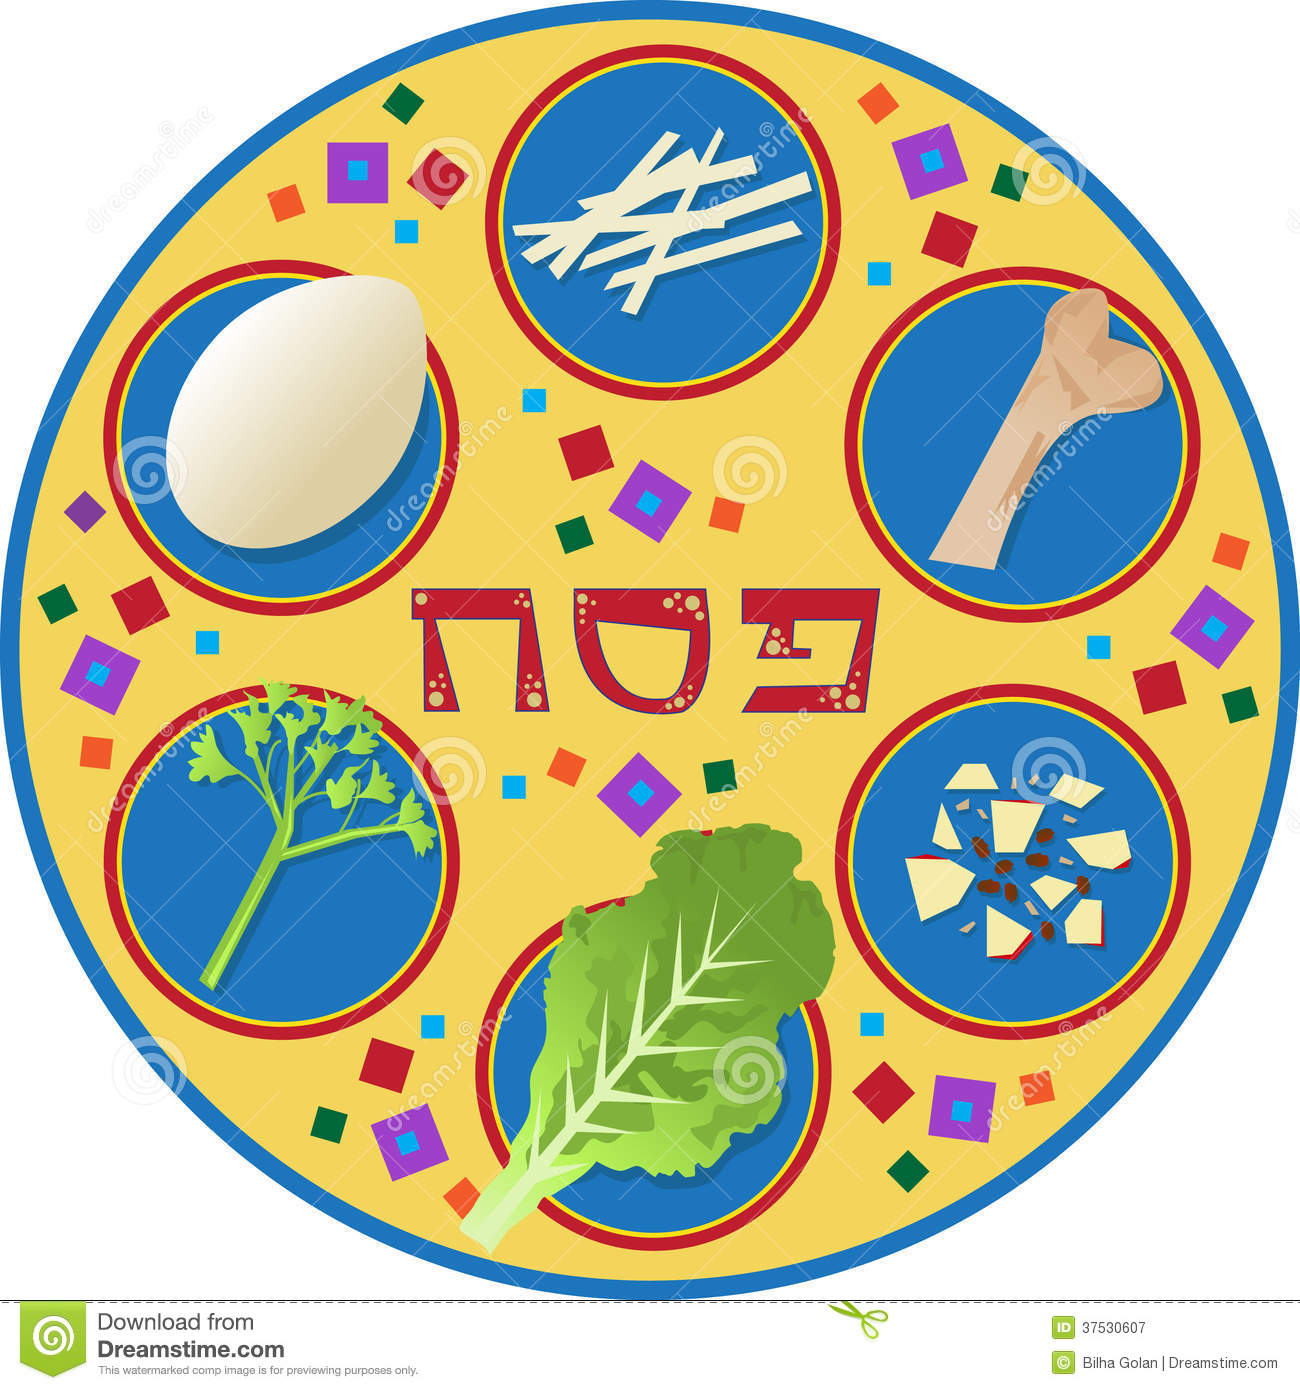 Passover Clip Art Free | Clipart Panda - Free Clipart Images